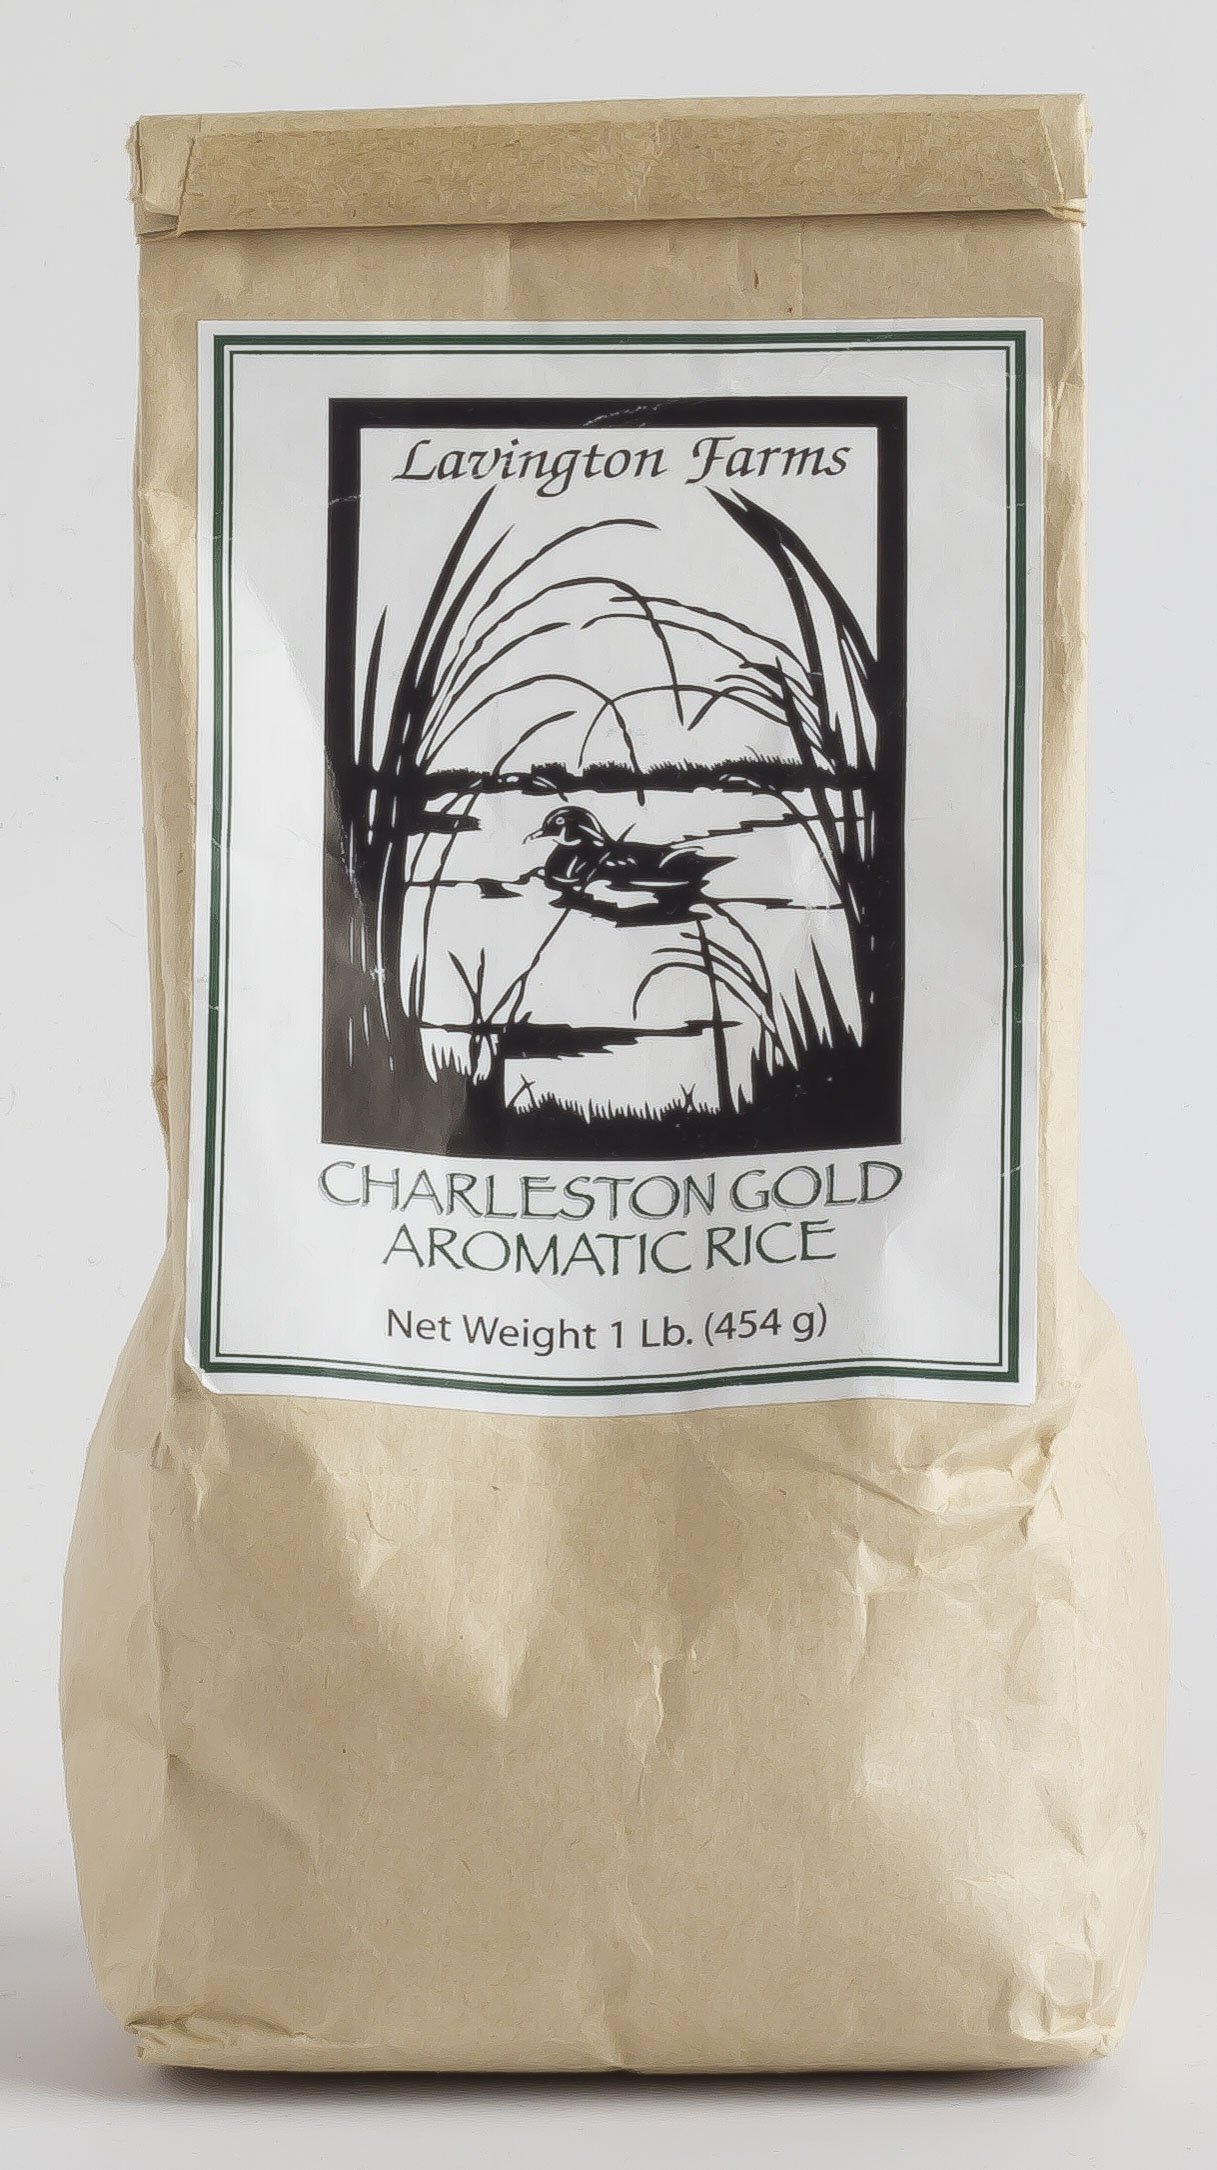 Charleston Gold Aromatic Rice - Lavington Farms 1lb 454g